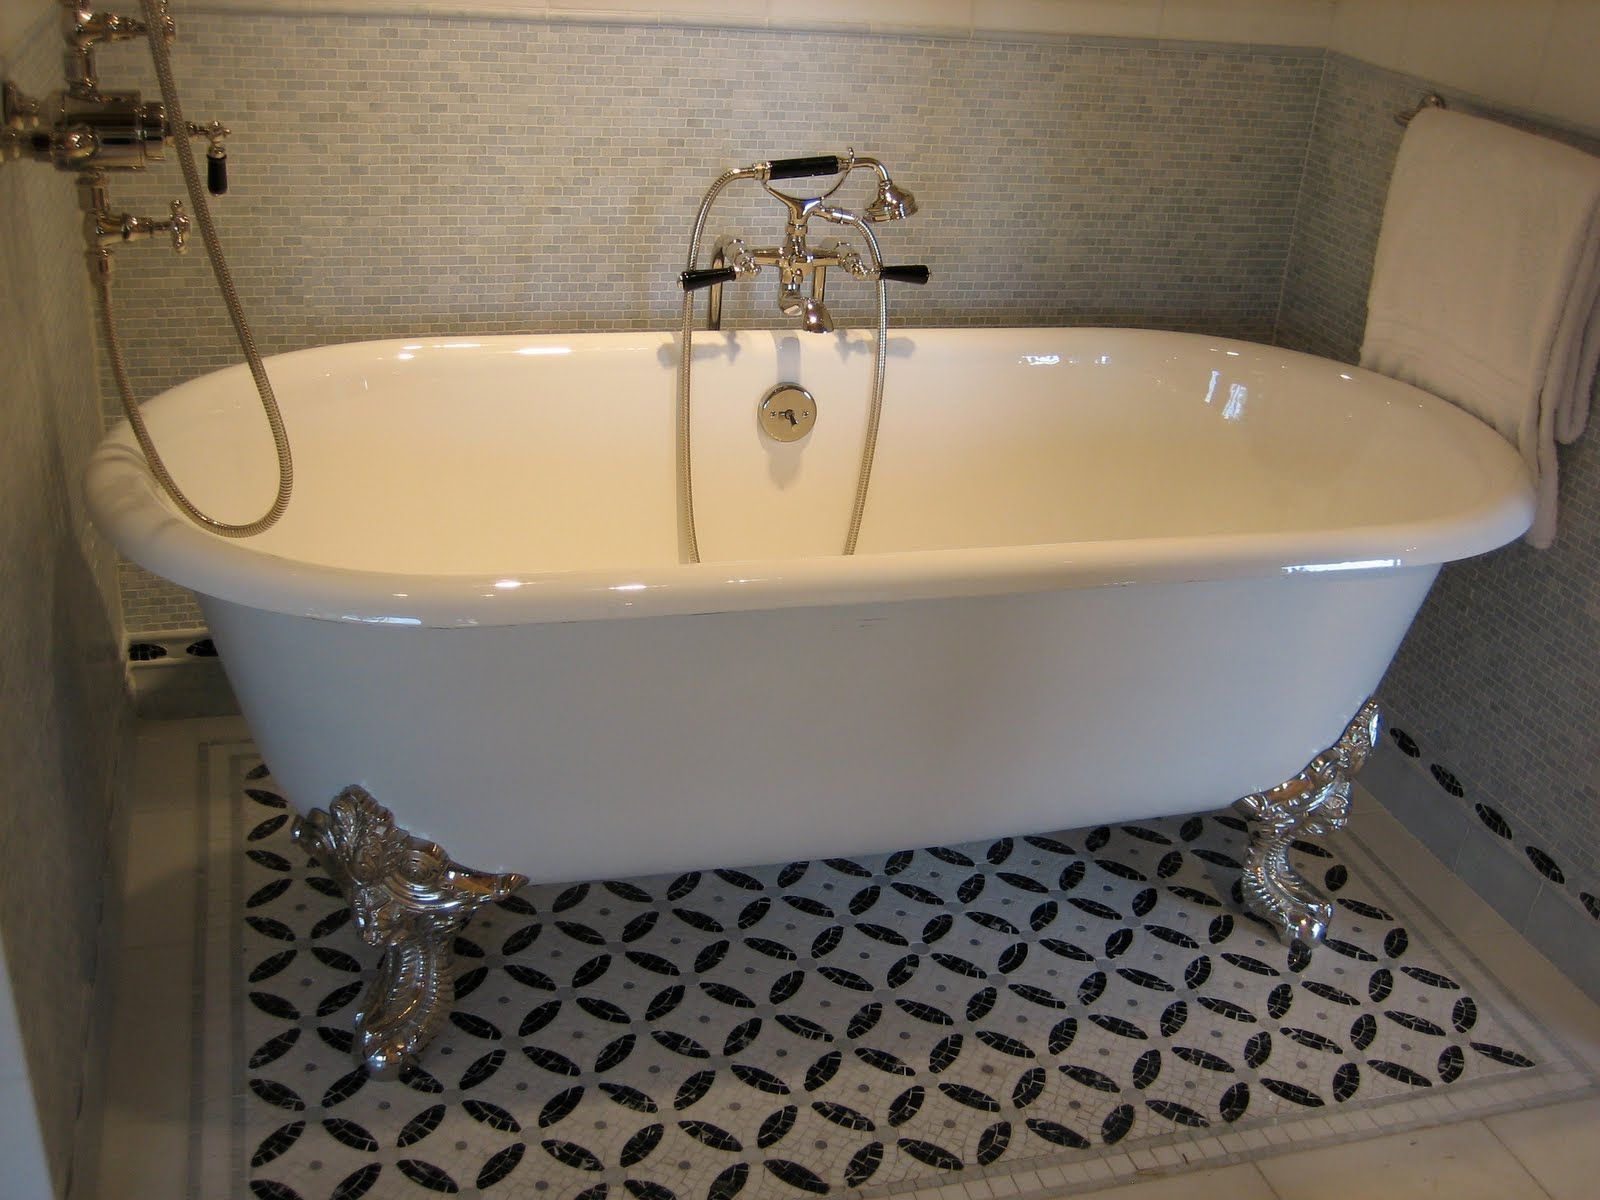 accent tile rug under clawfoot tub